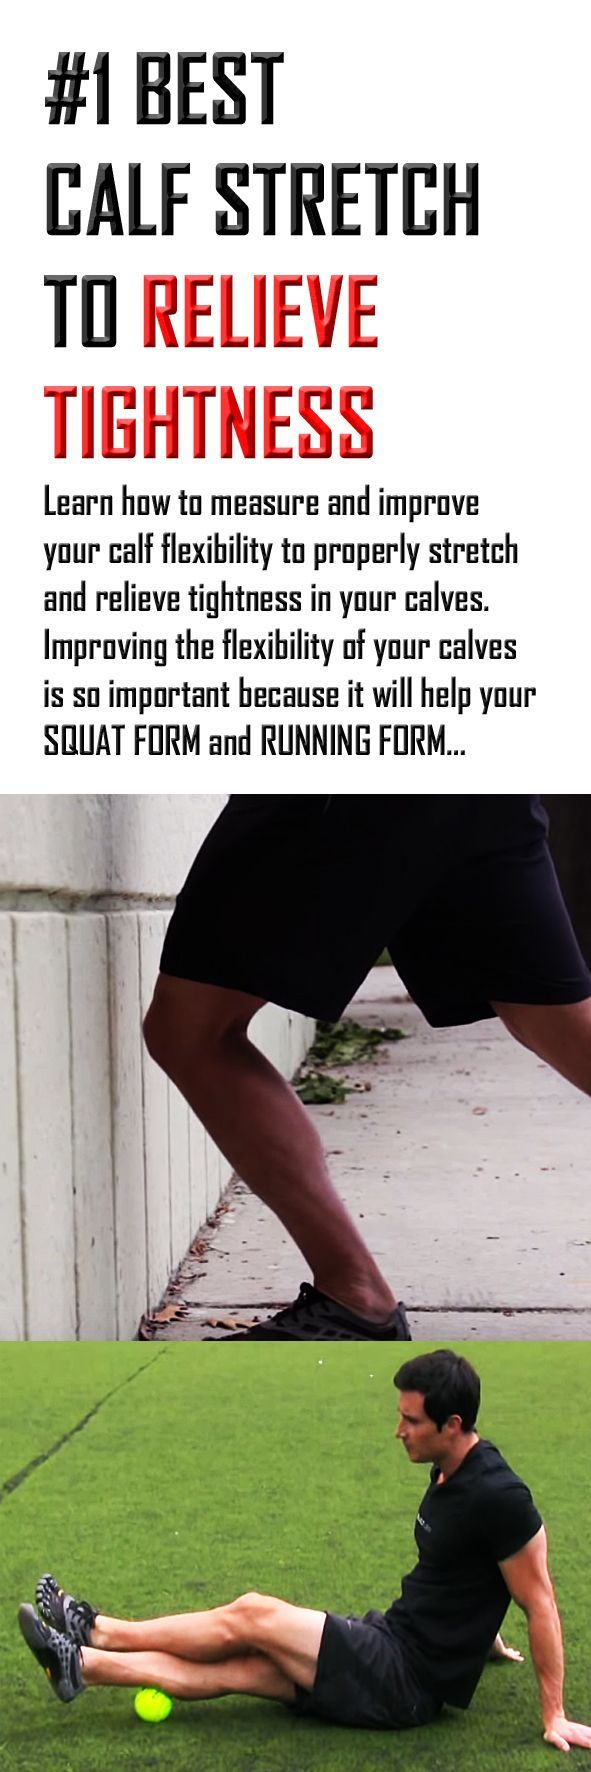 We have all felt the tightness in our #calves. #Stretching them is essential to preventing injuries. #BeFitEverywhere